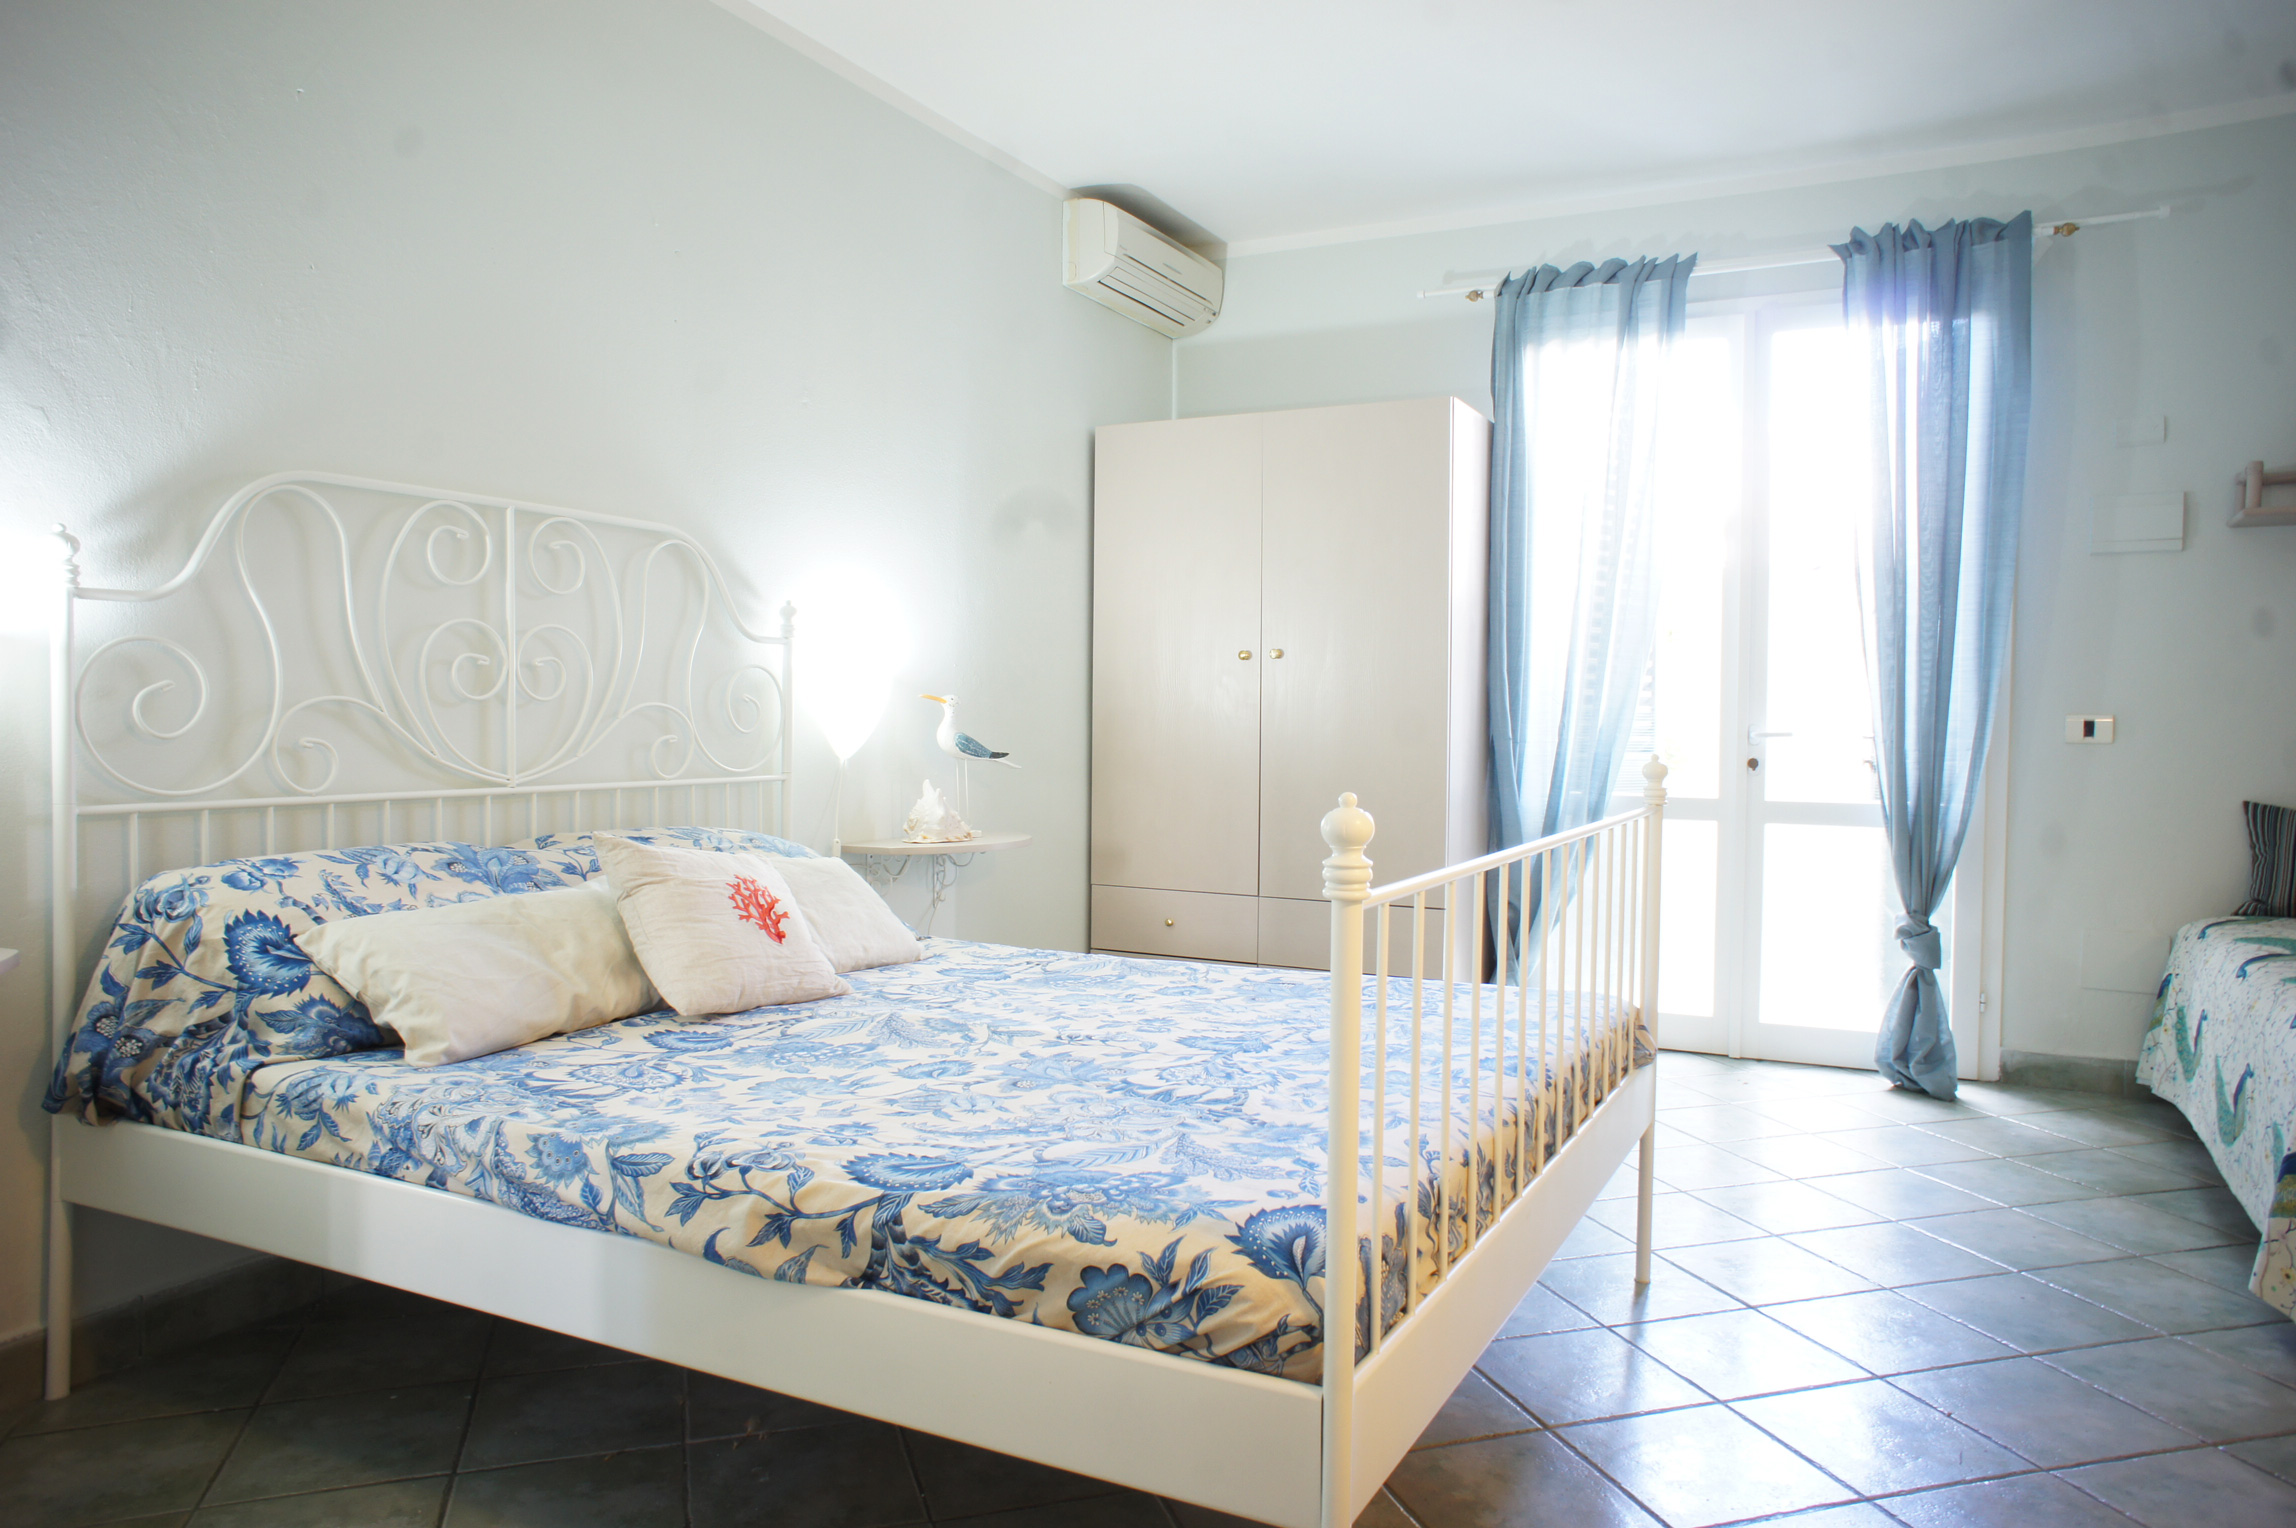 Studio Levante Friendly furnished studio with 3 comfortable beds; only 300m from the sandy beach and 600m from the town center of Marina di Campo; with airconditioning and parking lot.